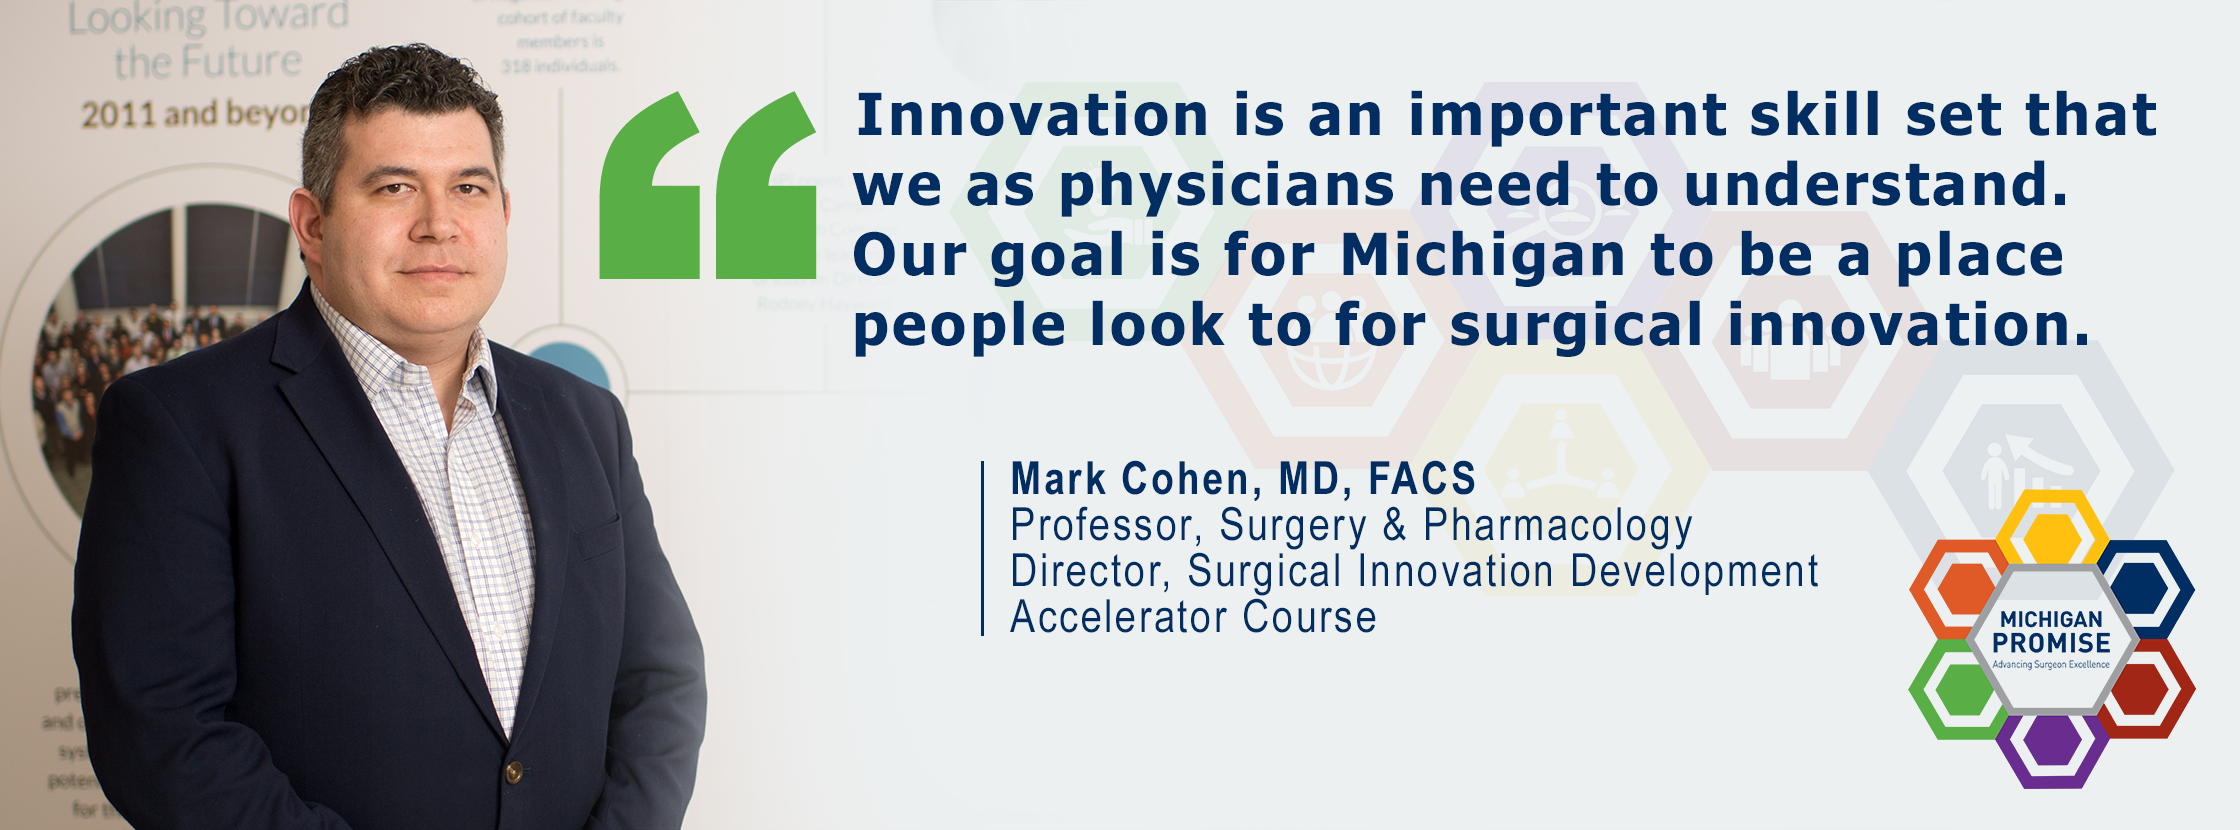 """Innovation is an important skill set that we as physicians need to understand. Our goal is for Michigan to be a place people look to for surgical innovation."" Mark Cohen, MD, FACS"